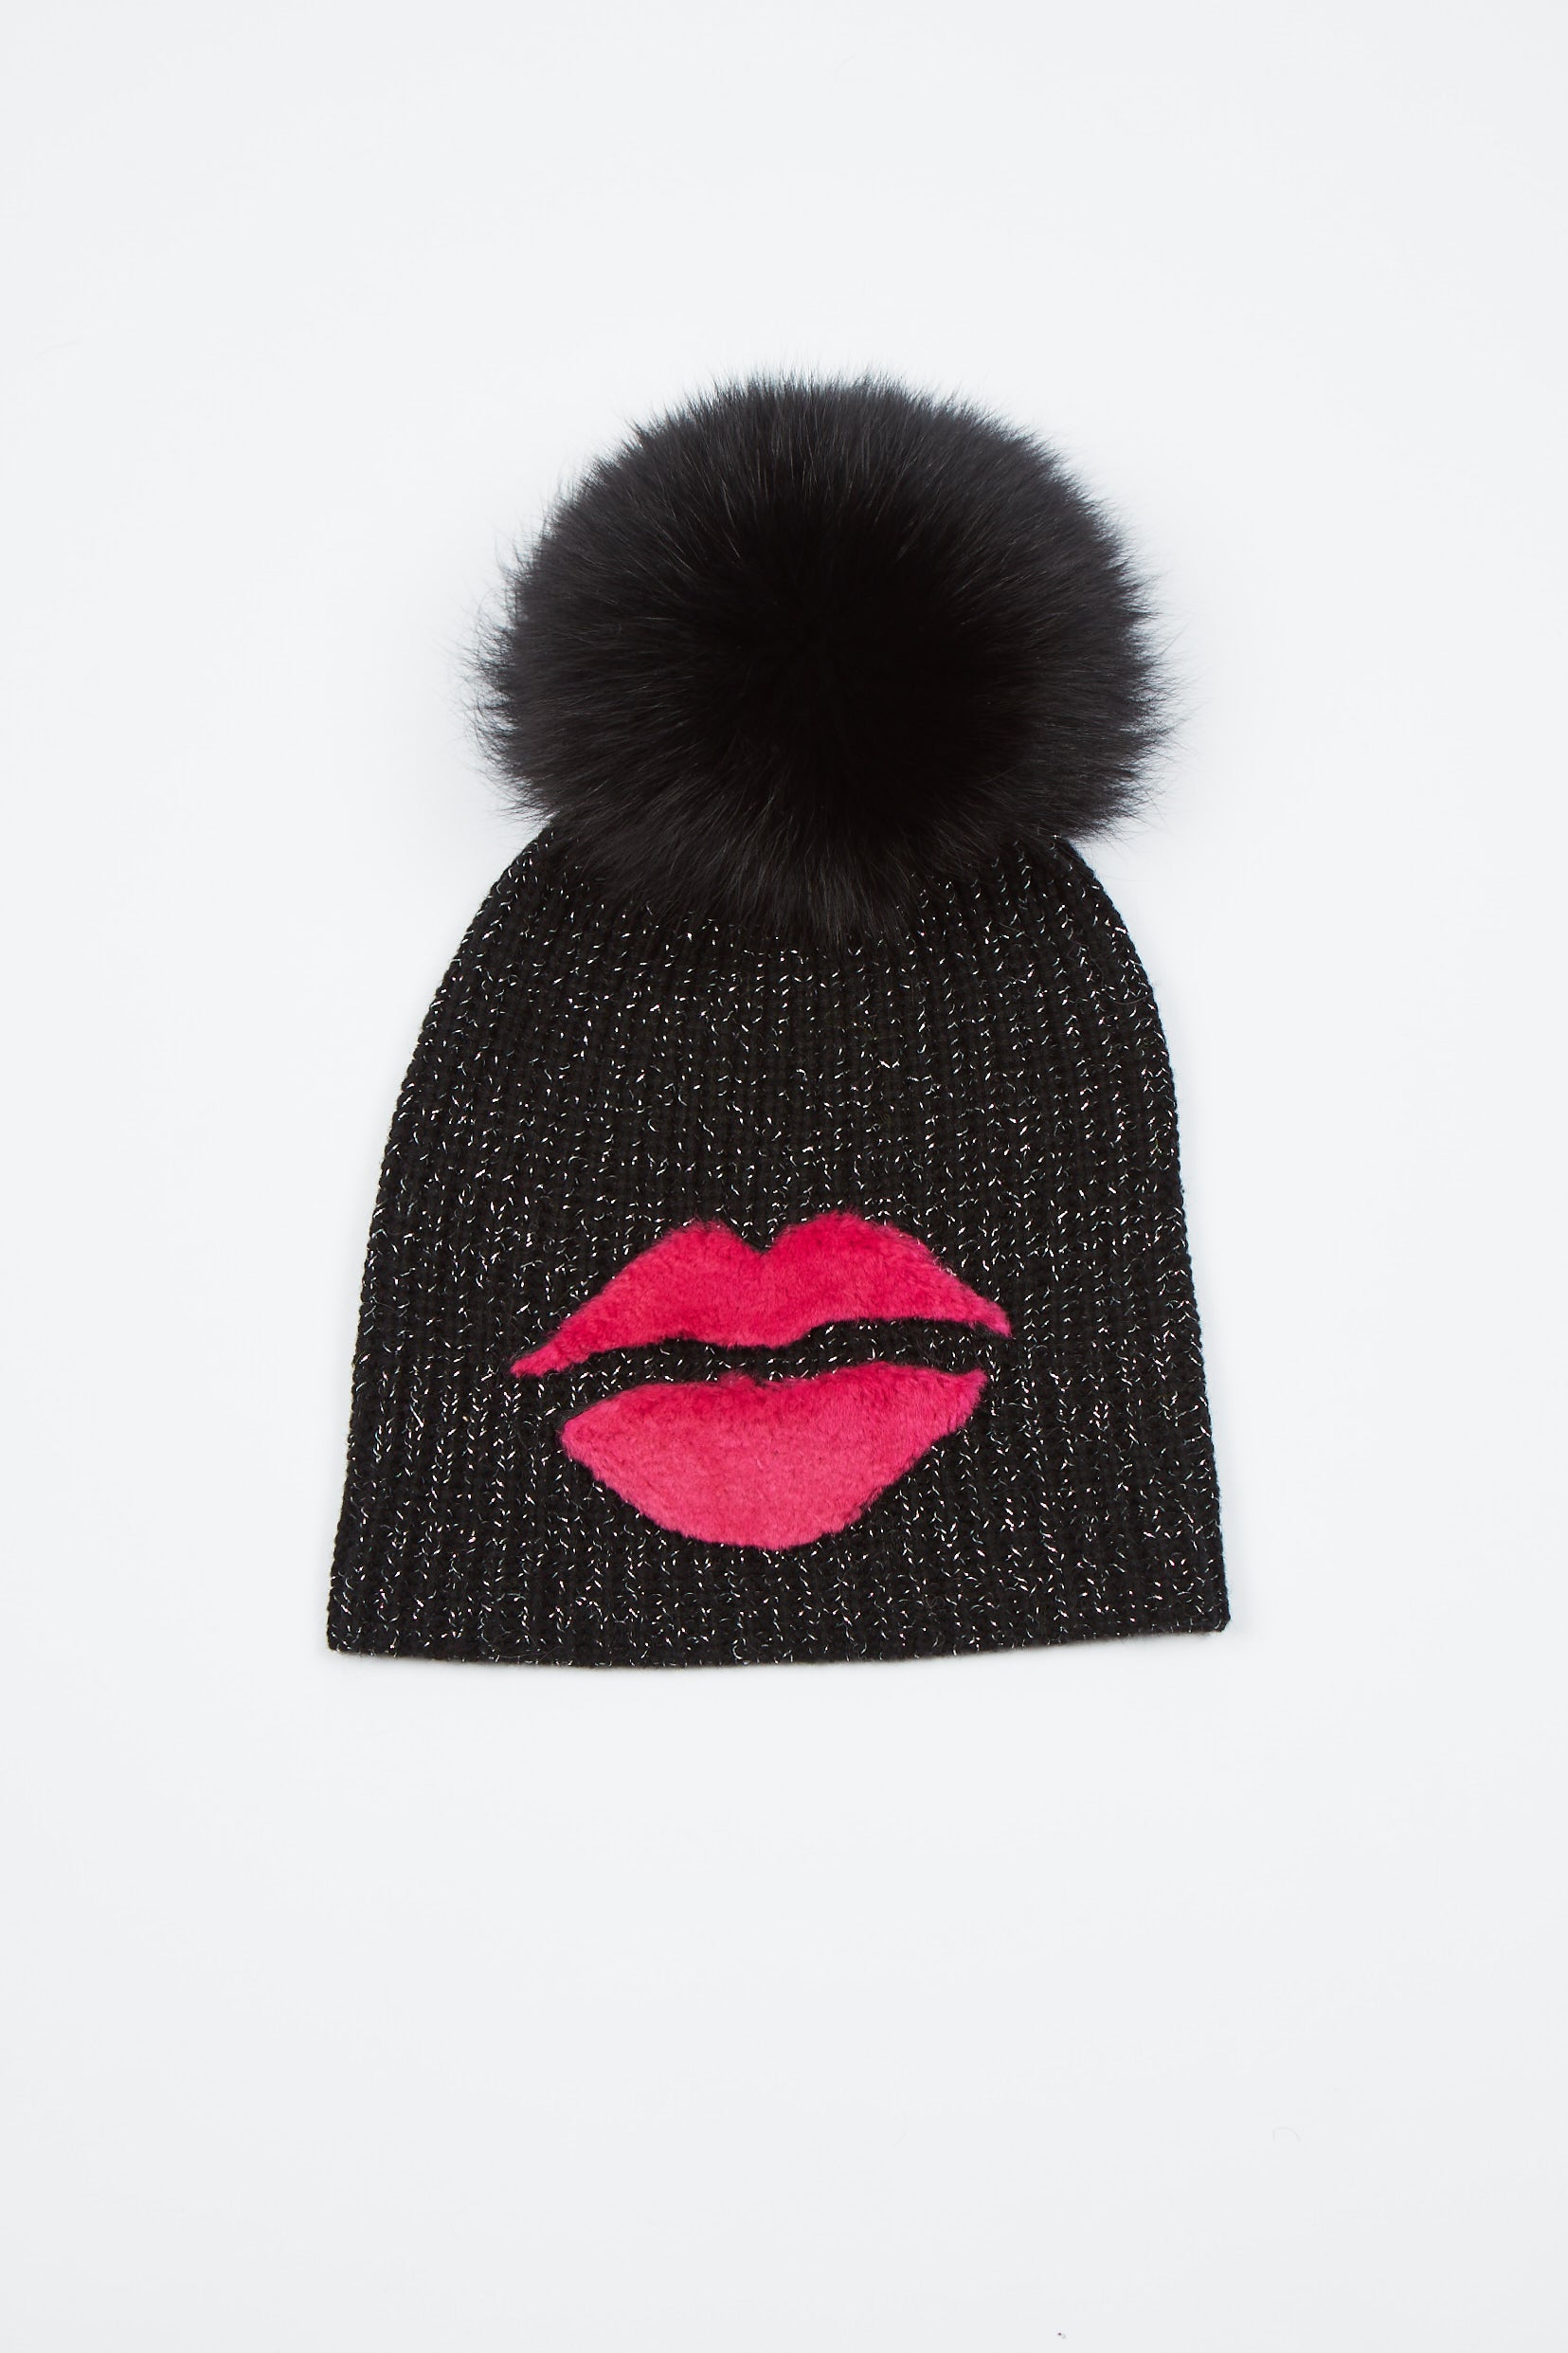 The Kosmic Kiss Hat